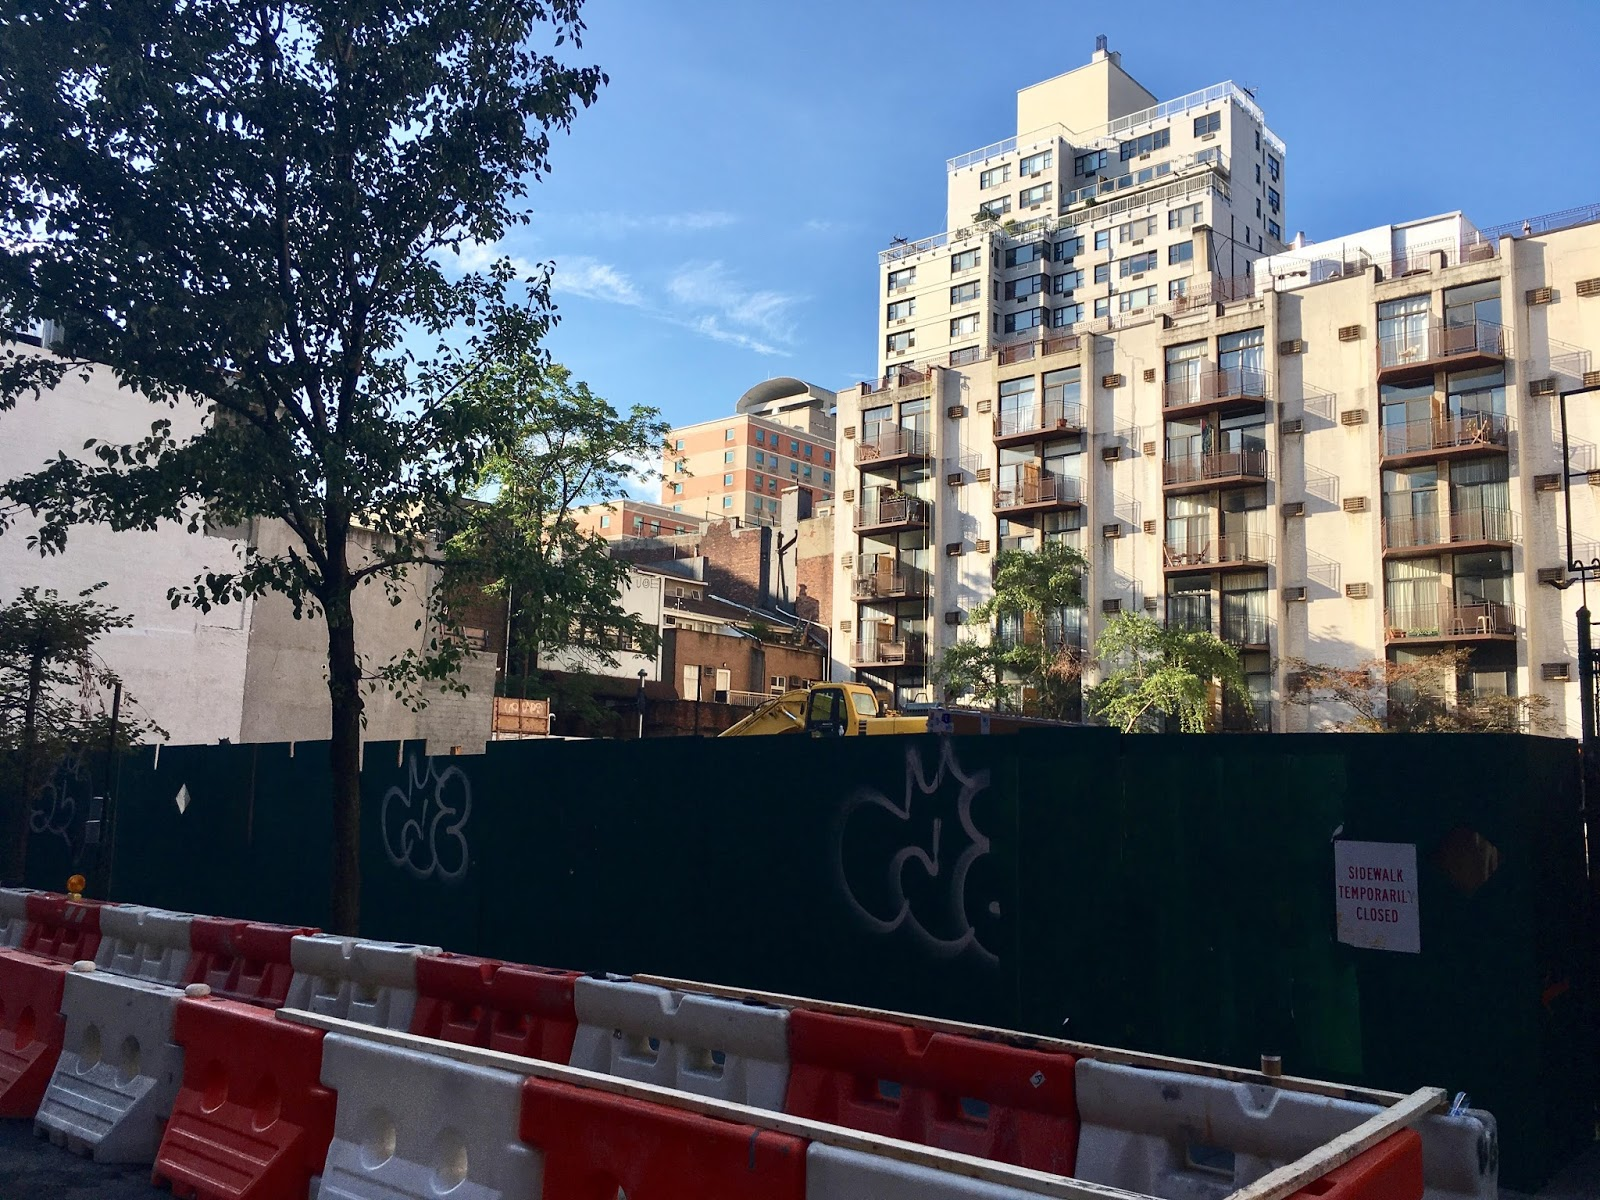 ev grieve: foundation work starts on moxy hotel as plywood